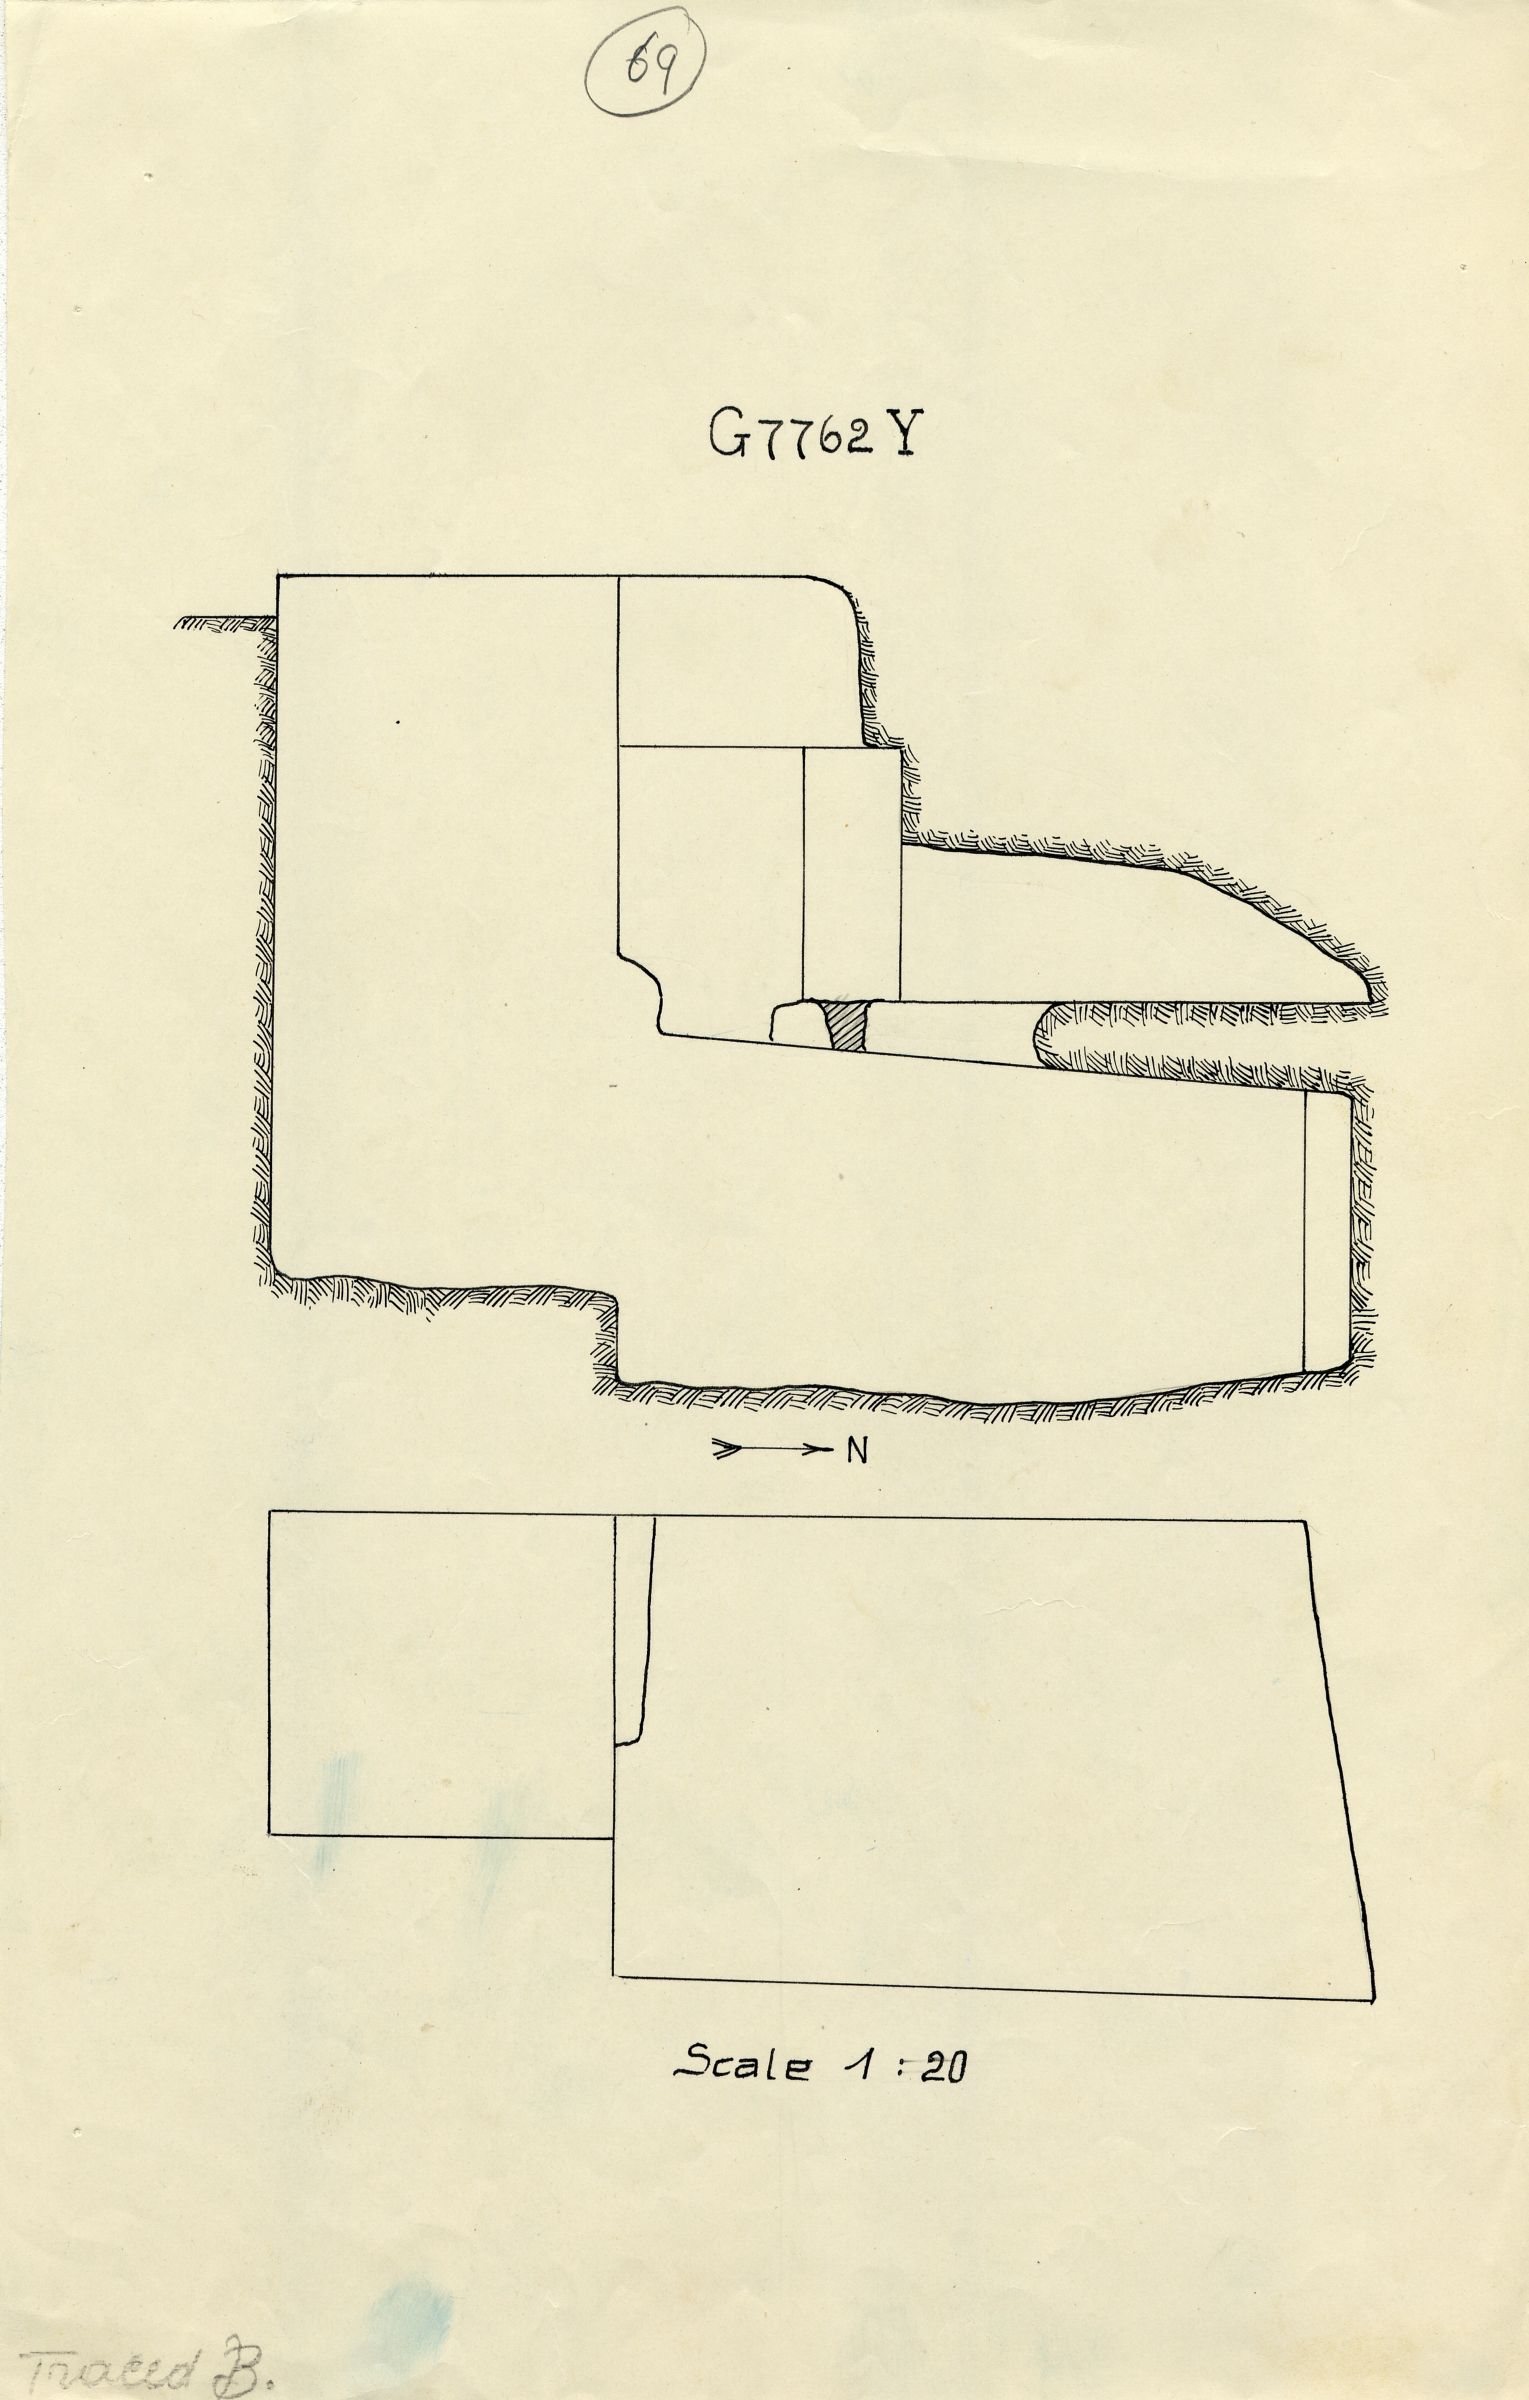 Maps and plans: G 7762, Shaft Y